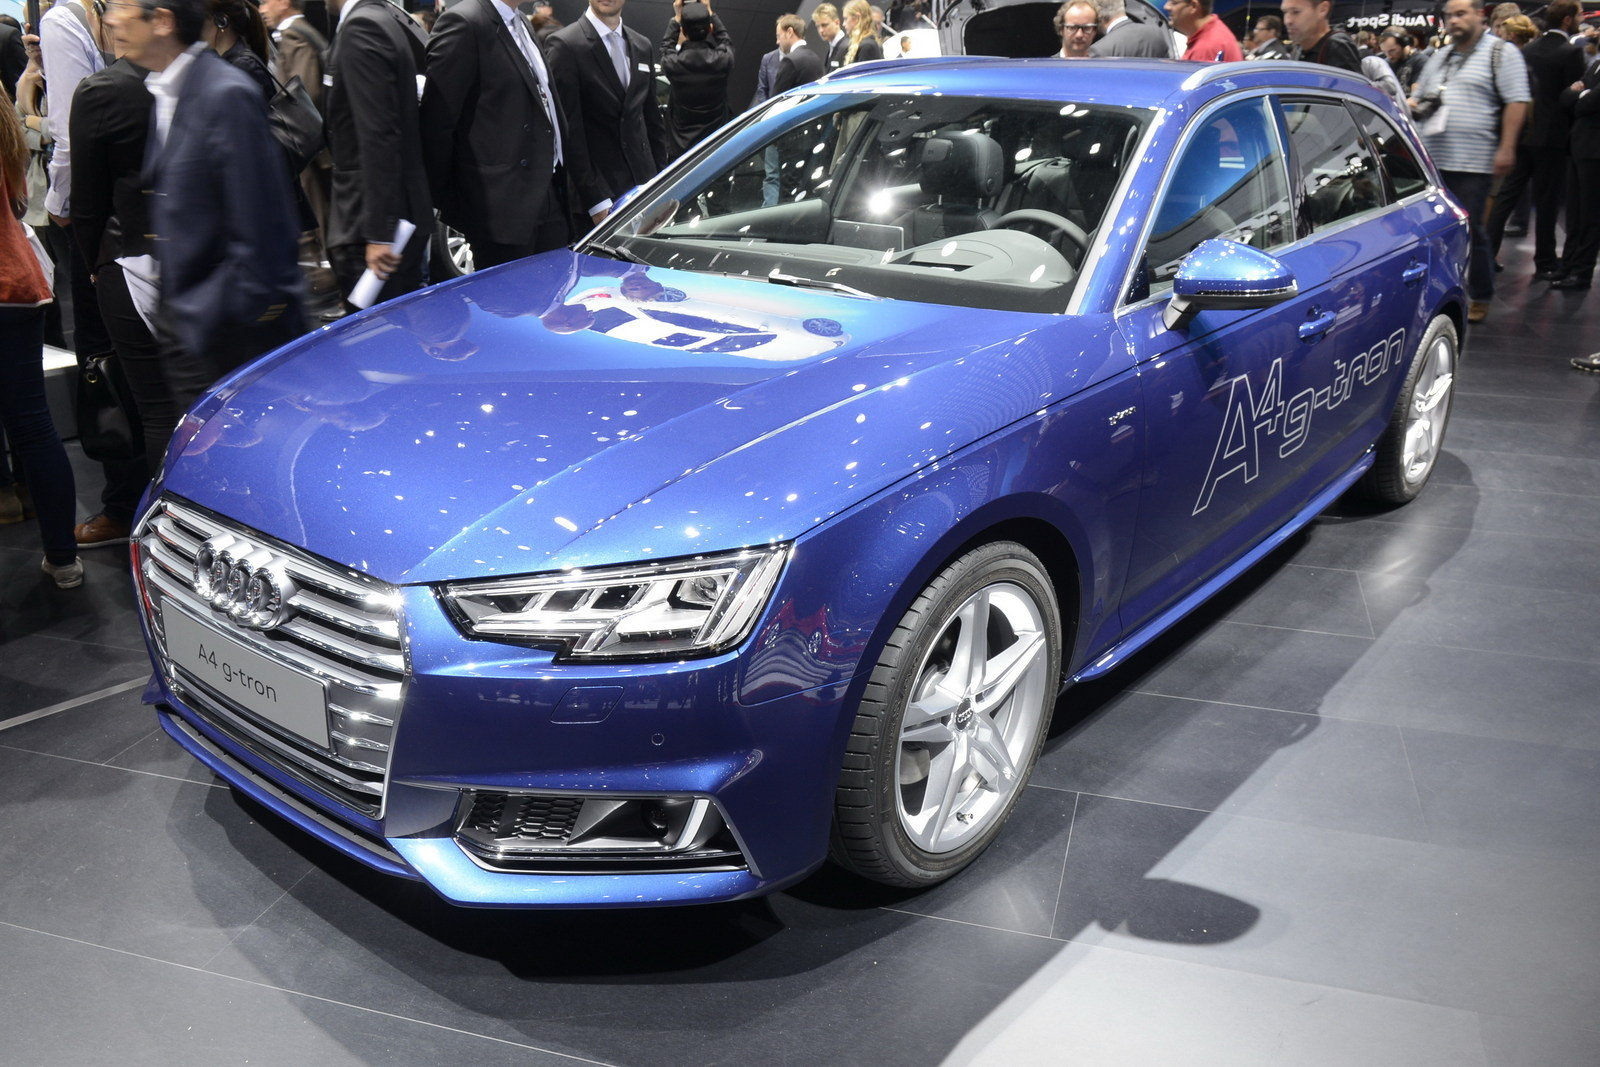 2016 audi a4 g tron picture 646674 car review top speed. Black Bedroom Furniture Sets. Home Design Ideas